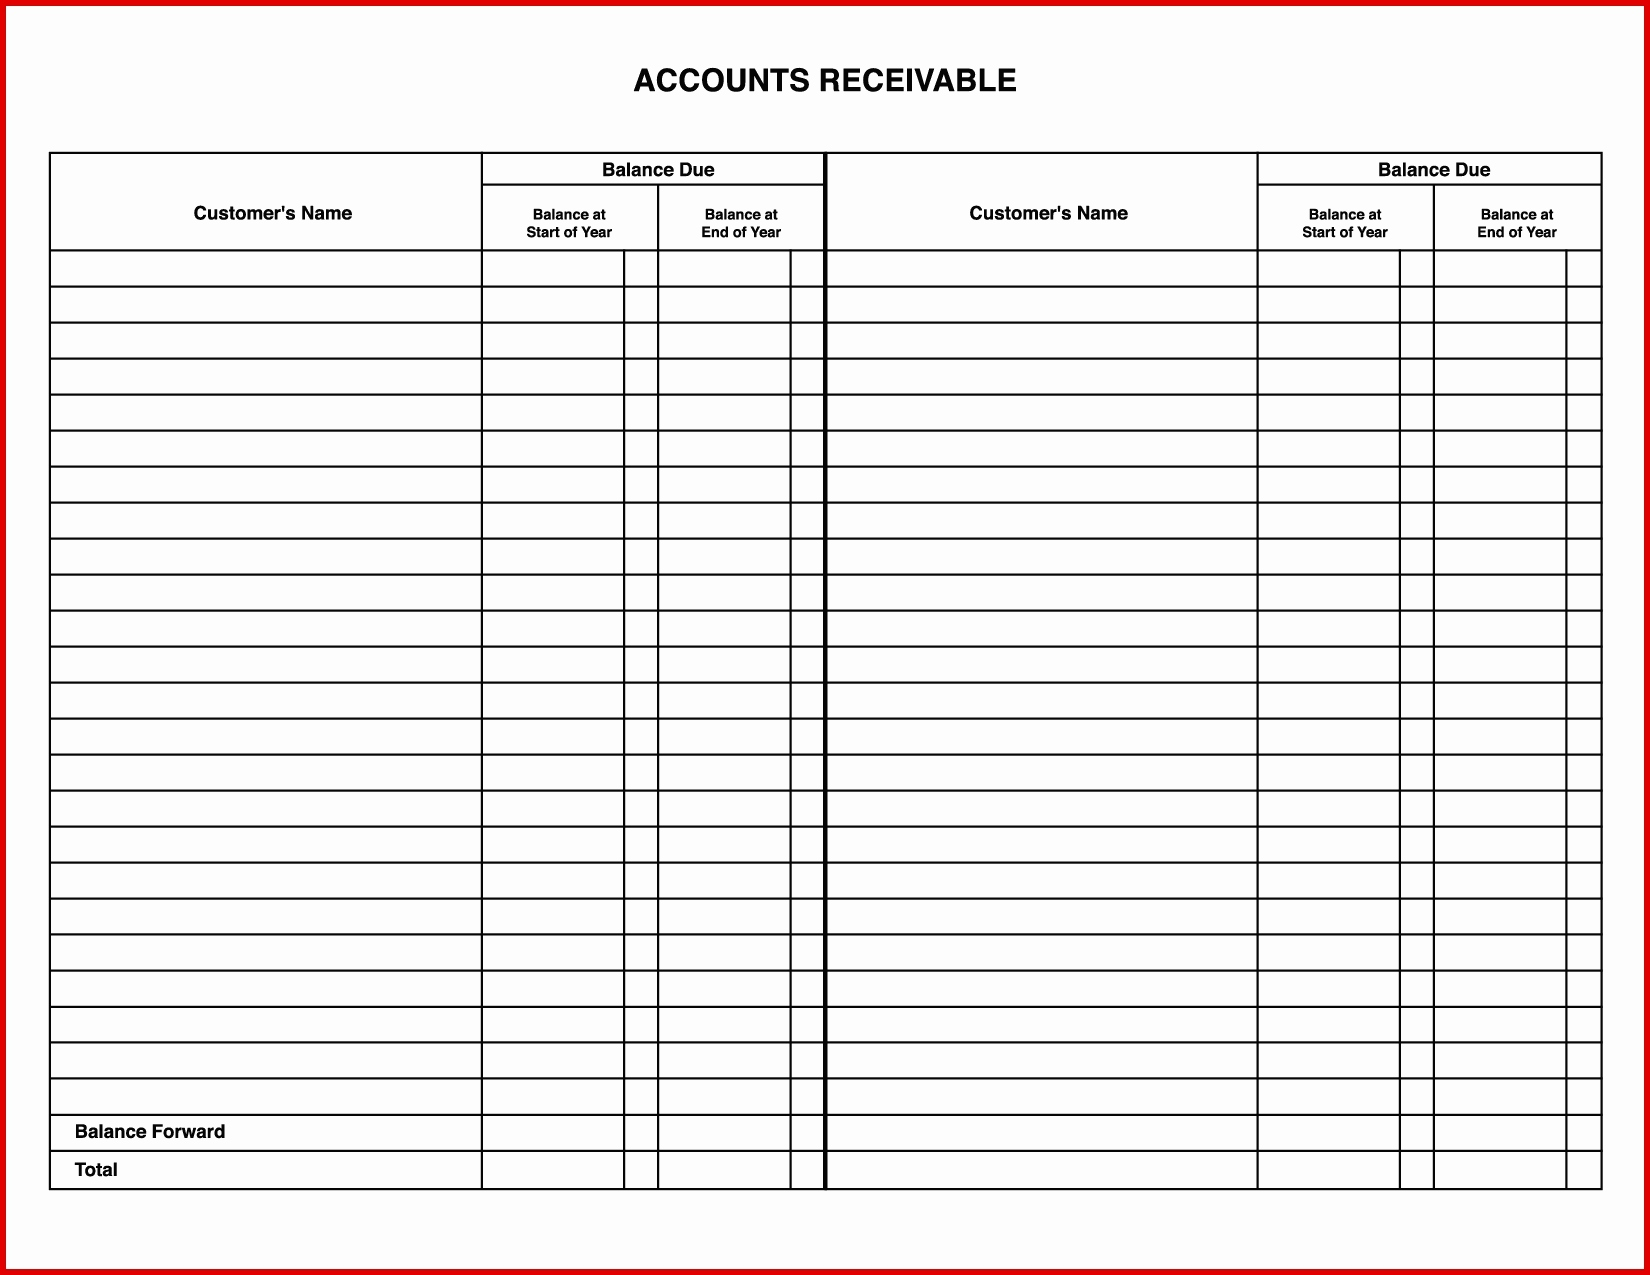 download accounts payable with aging excel template exceldatapro